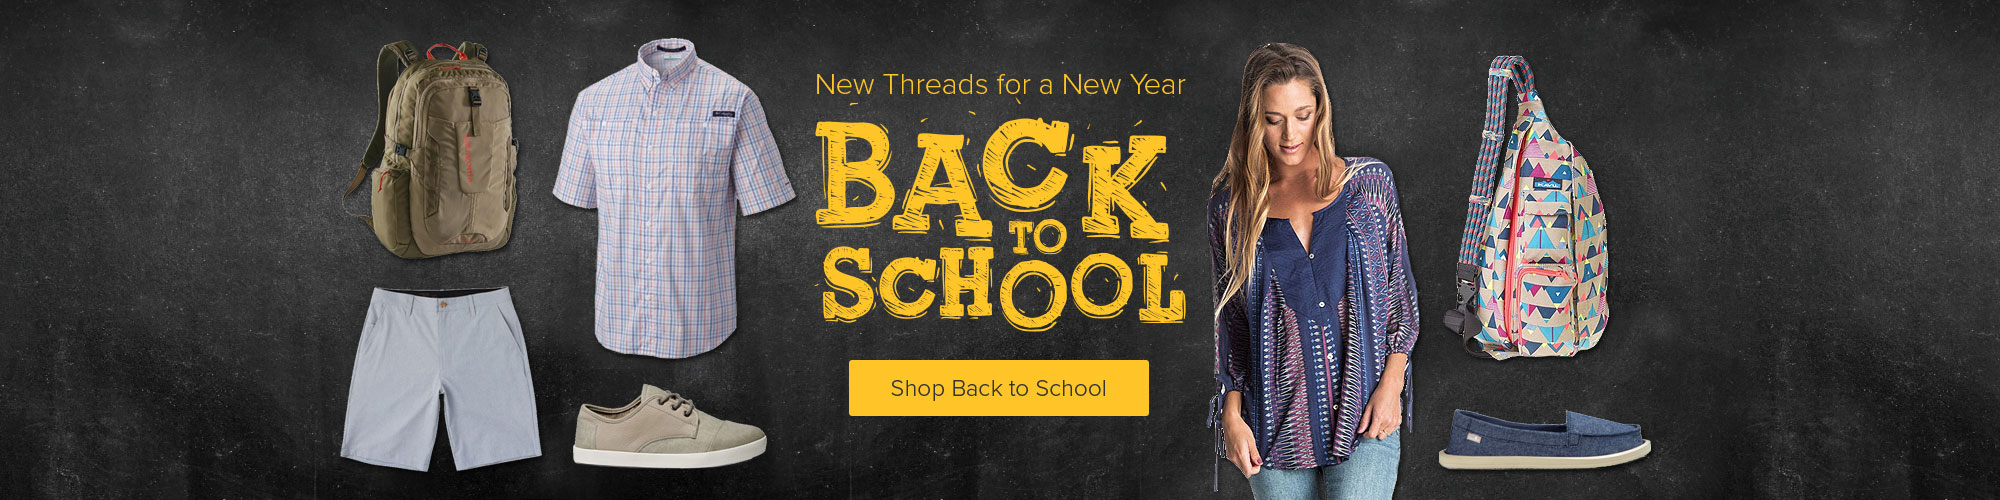 New Threads for a New Year - Shop Back to School